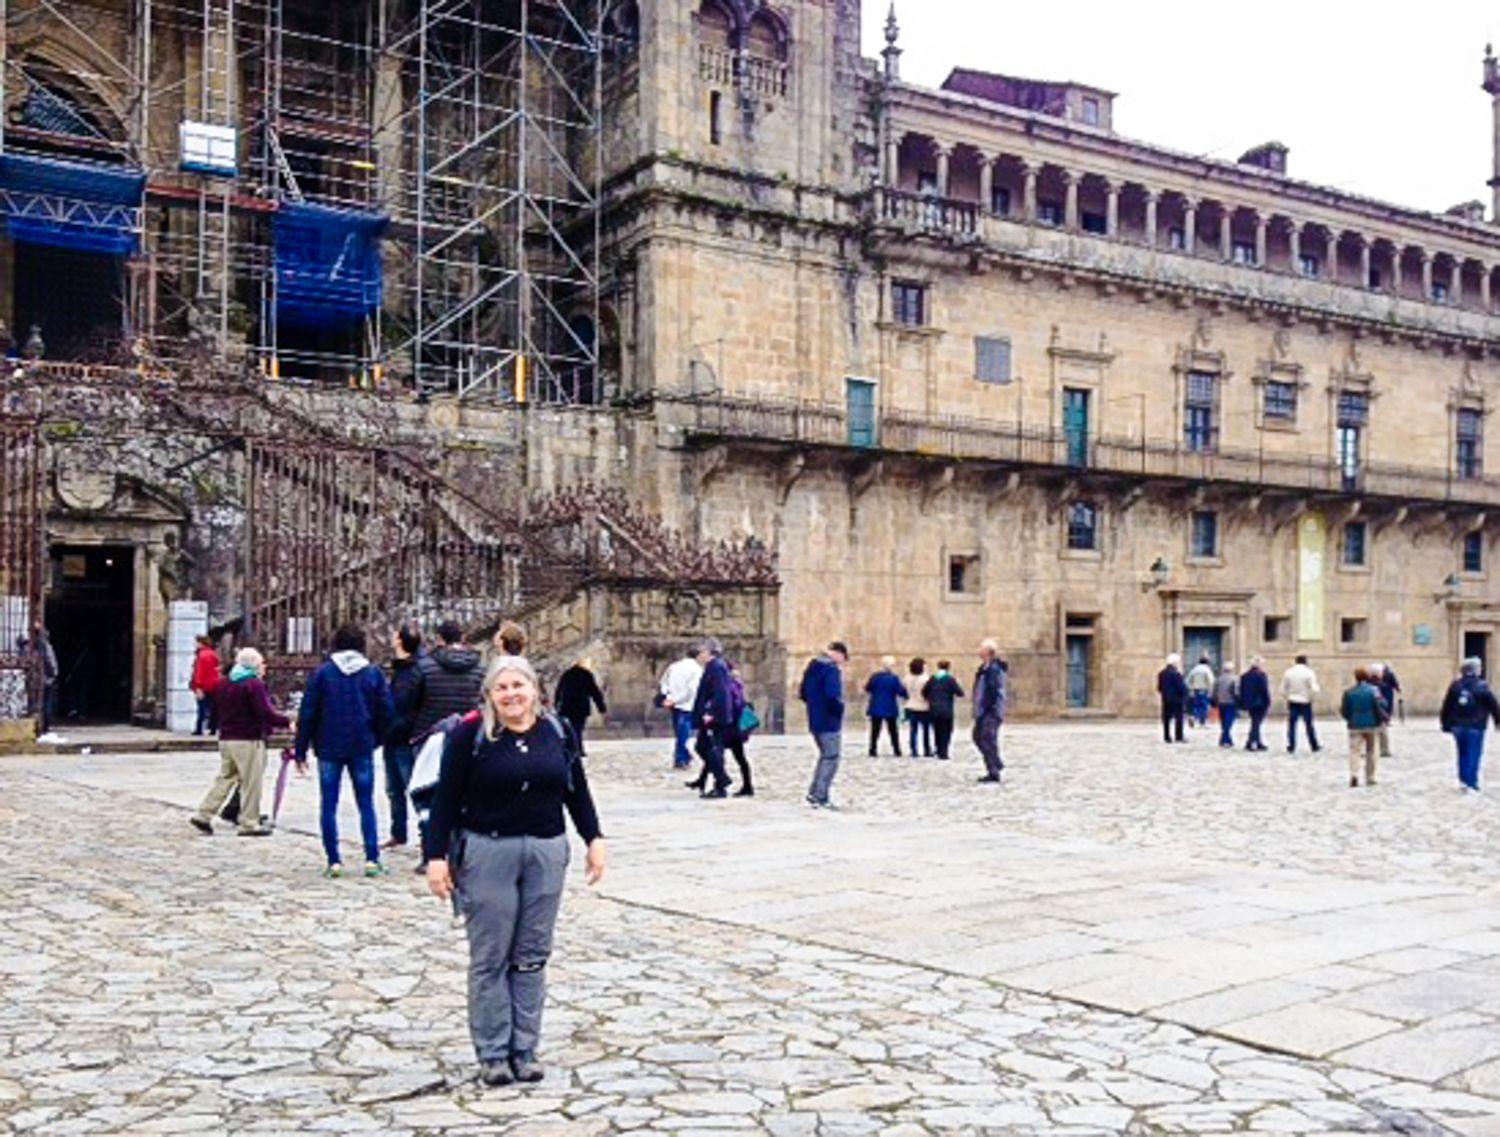 Finishing the 450 miles of the Camino, in Santiago de Compostela, Spain, May 2016.